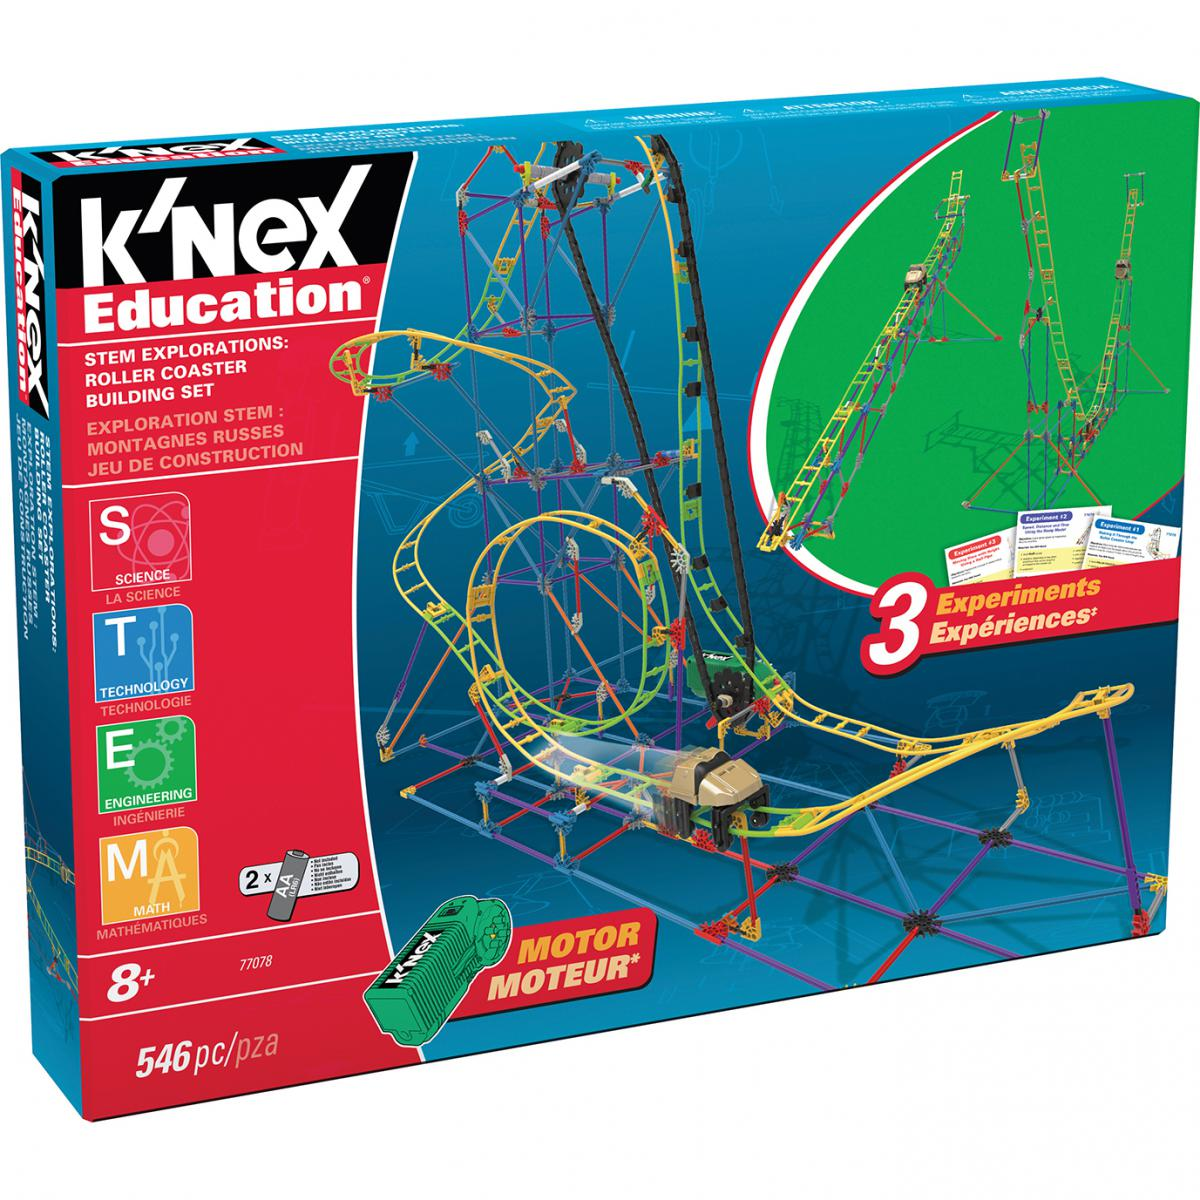 K'Nex® STEM Explorations Roller Coaster Building Set